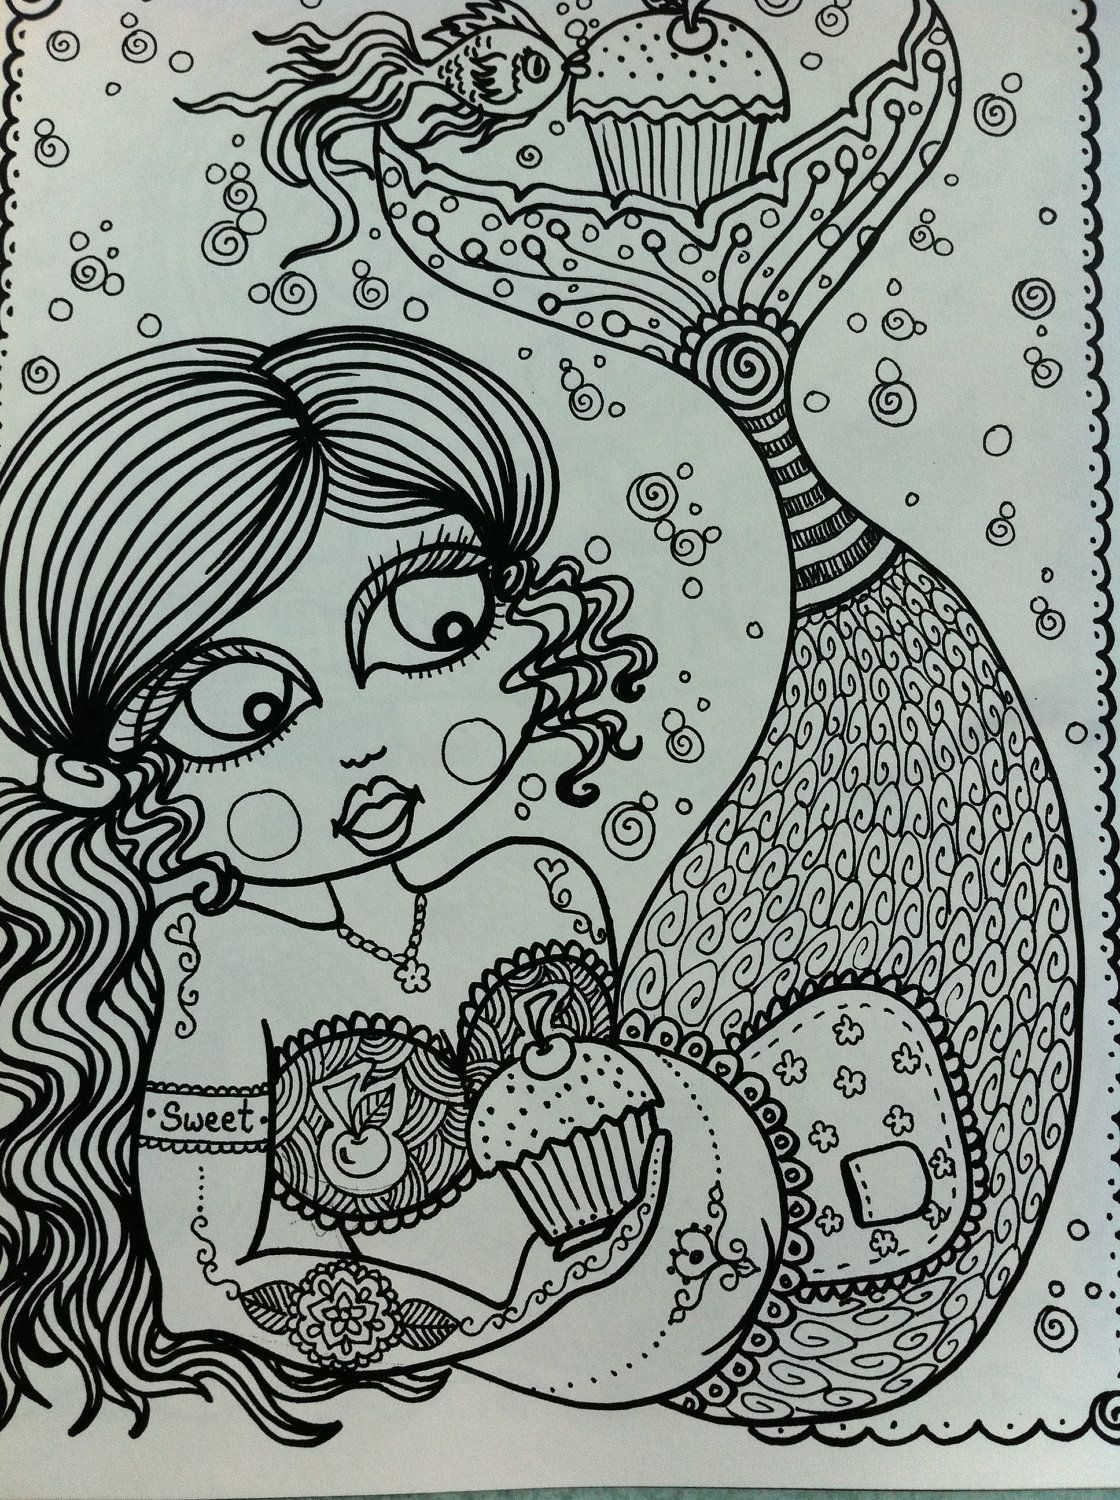 The Chubby Mermaid Coloring Book Fun for all ages be the ArTiST ...